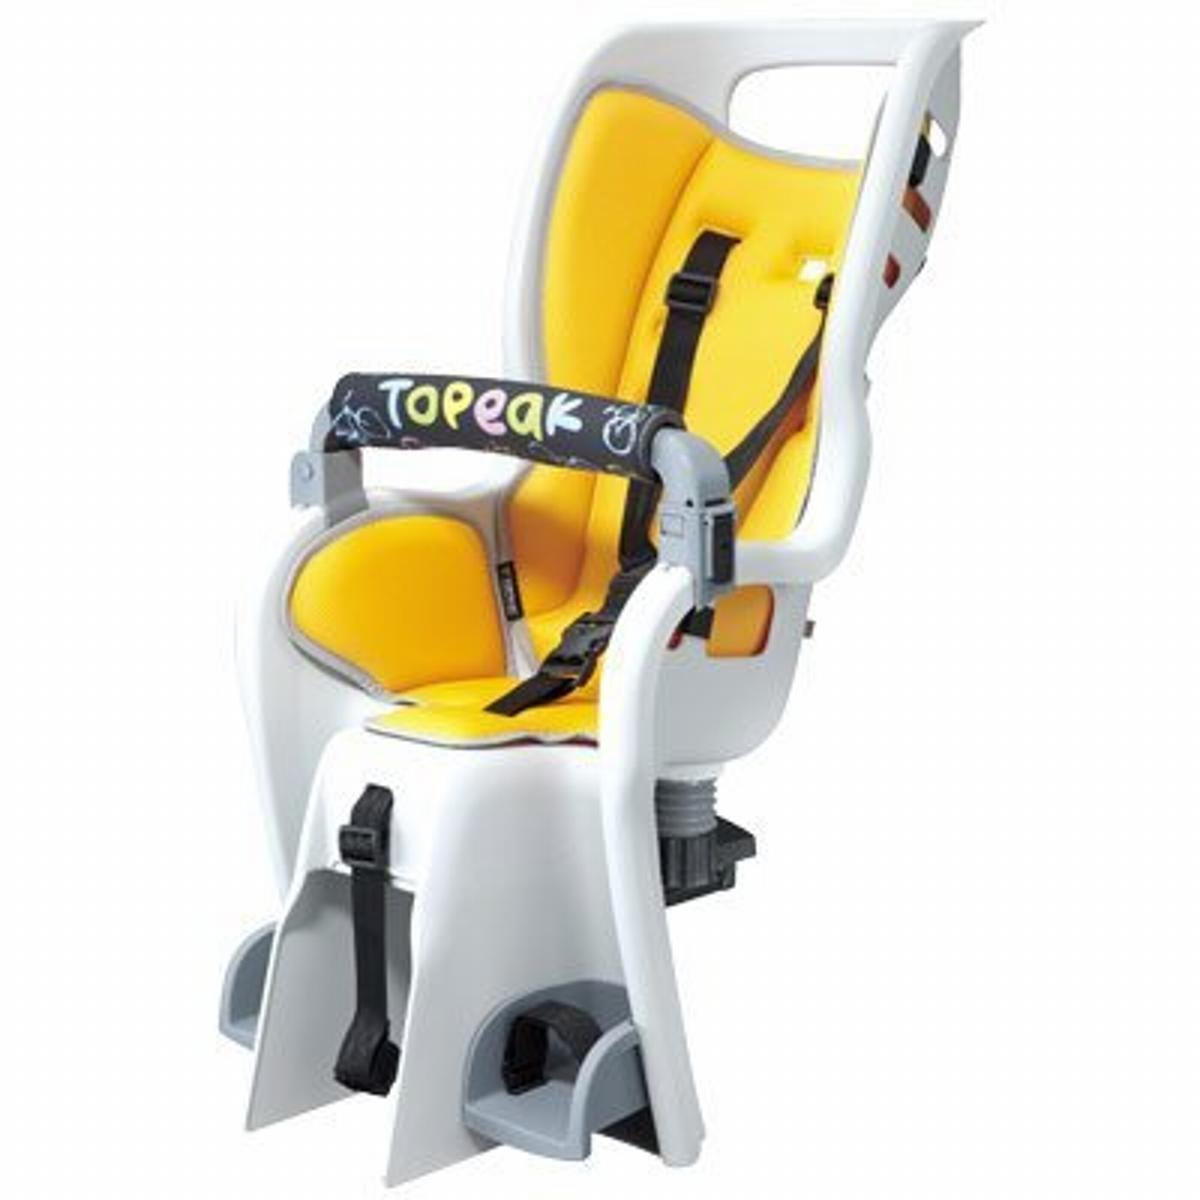 TOPK BABYSEAT II ONLY BabySeat II, Babyseat only, without rack, Yellow color seat pad